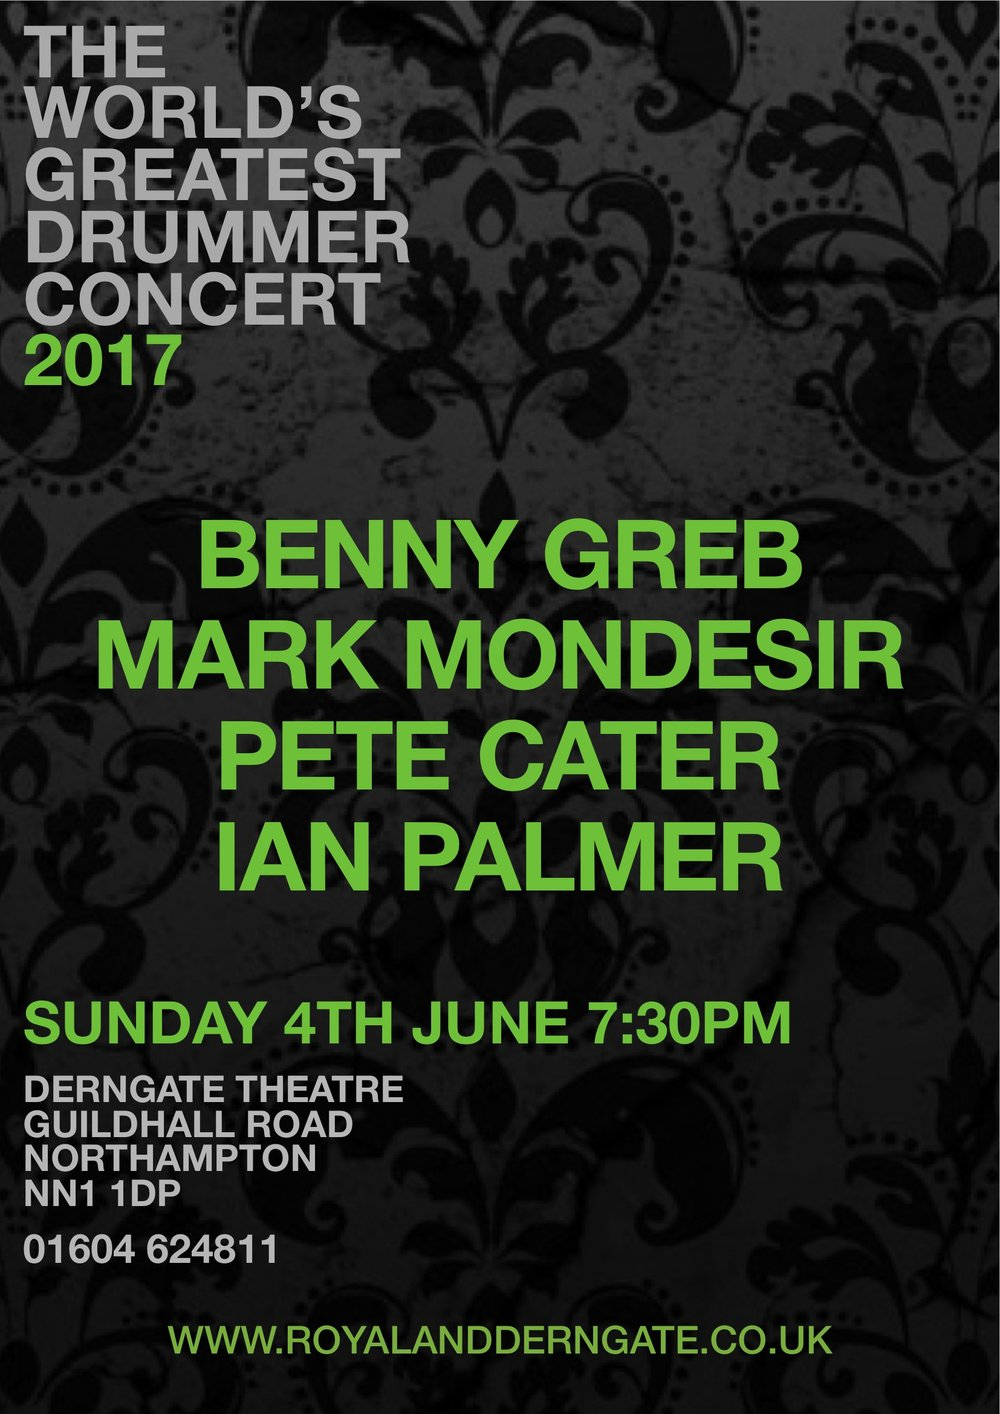 The last World's Greatest Drummer Concert featured Benny Greb, Mark Mondesir and Pete Cater.